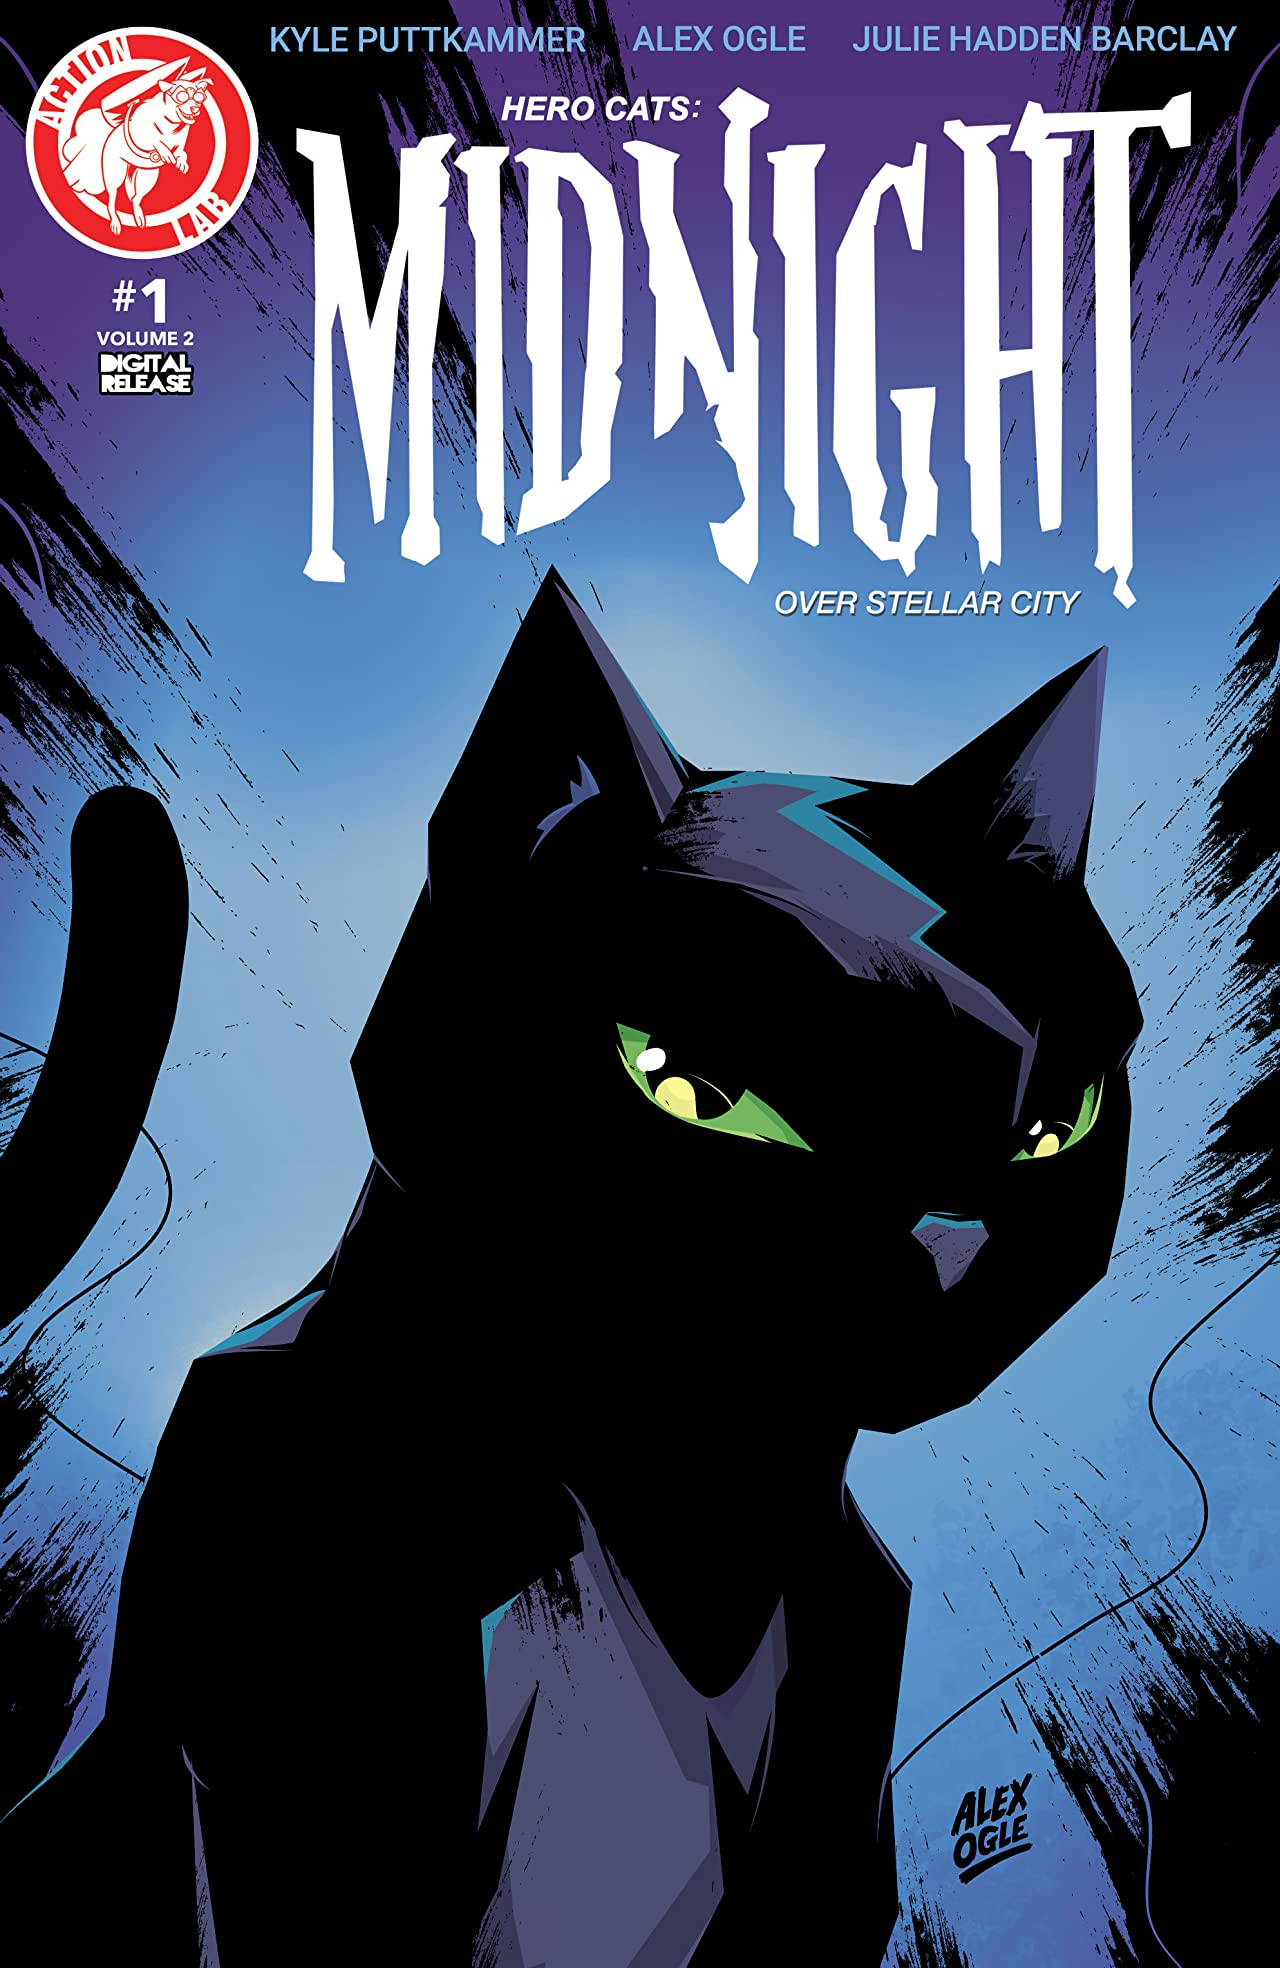 Hero Cats: Midnight Over Stellar City Vol. 2 #1